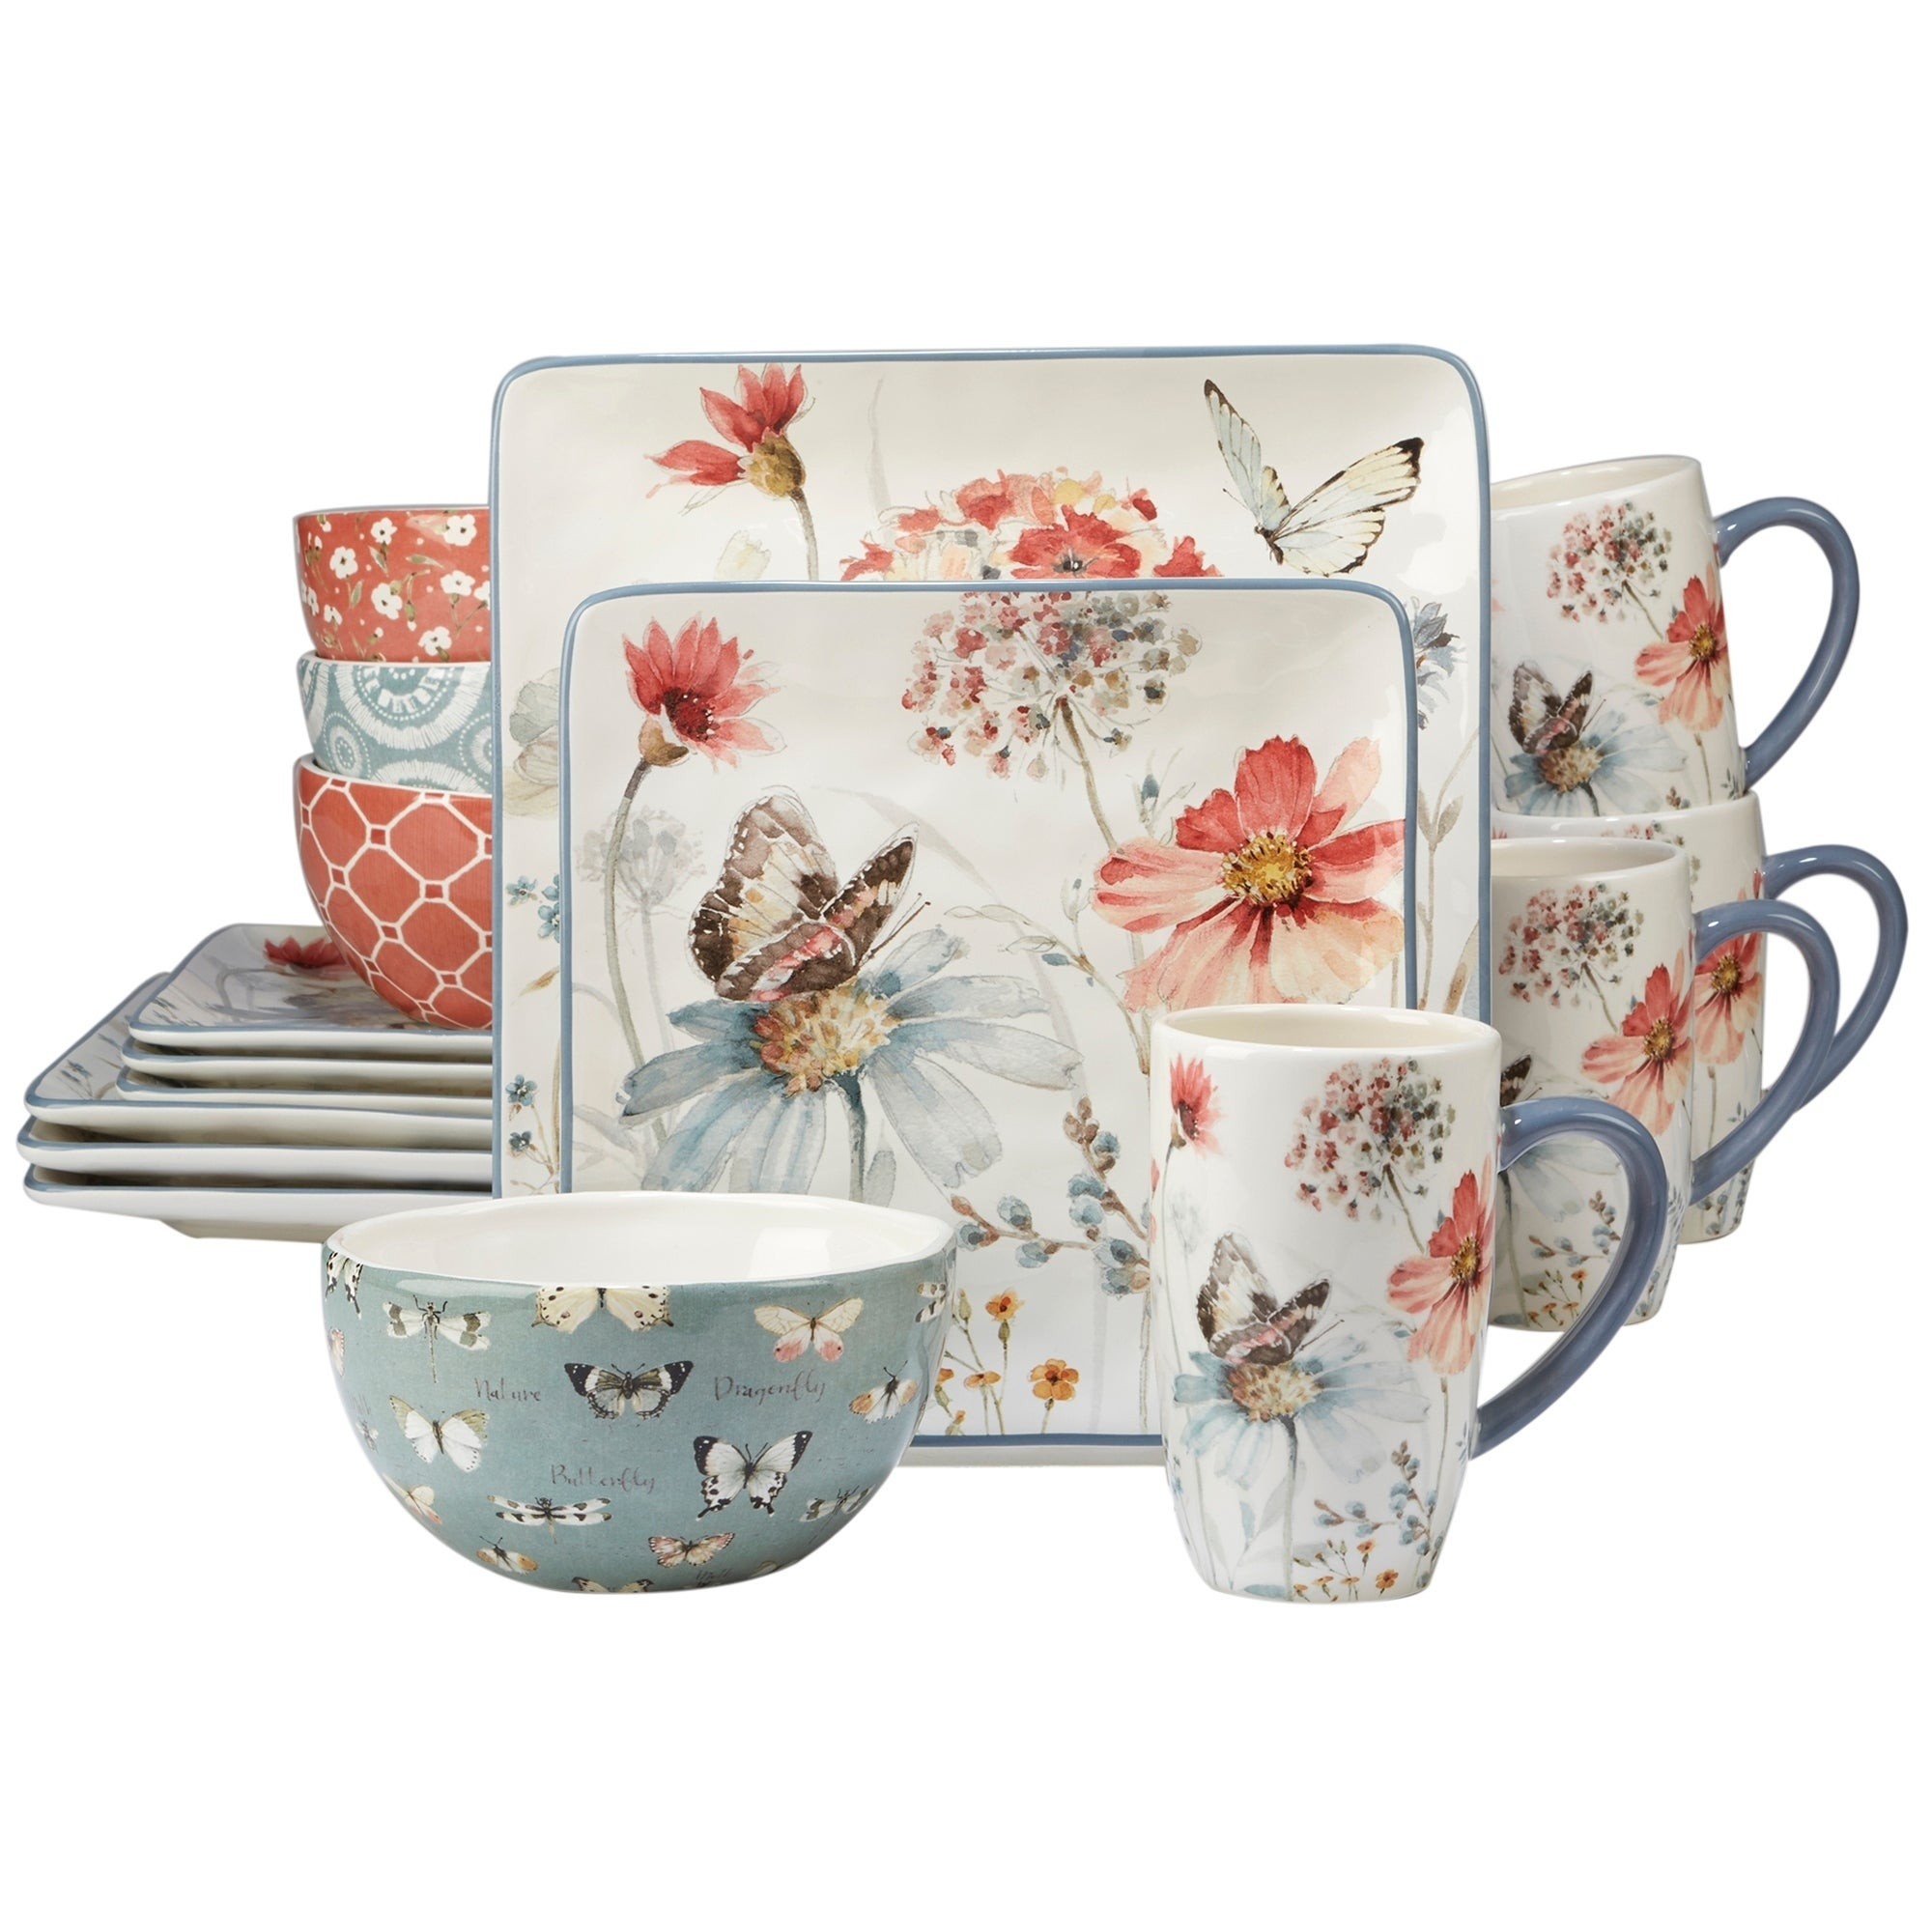 Shop Certified International Country Weekend 16-piece Dinnerware Set - On Sale - Free Shipping Today - Overstock.com - 19985311  sc 1 st  Overstock.com & Shop Certified International Country Weekend 16-piece Dinnerware Set ...